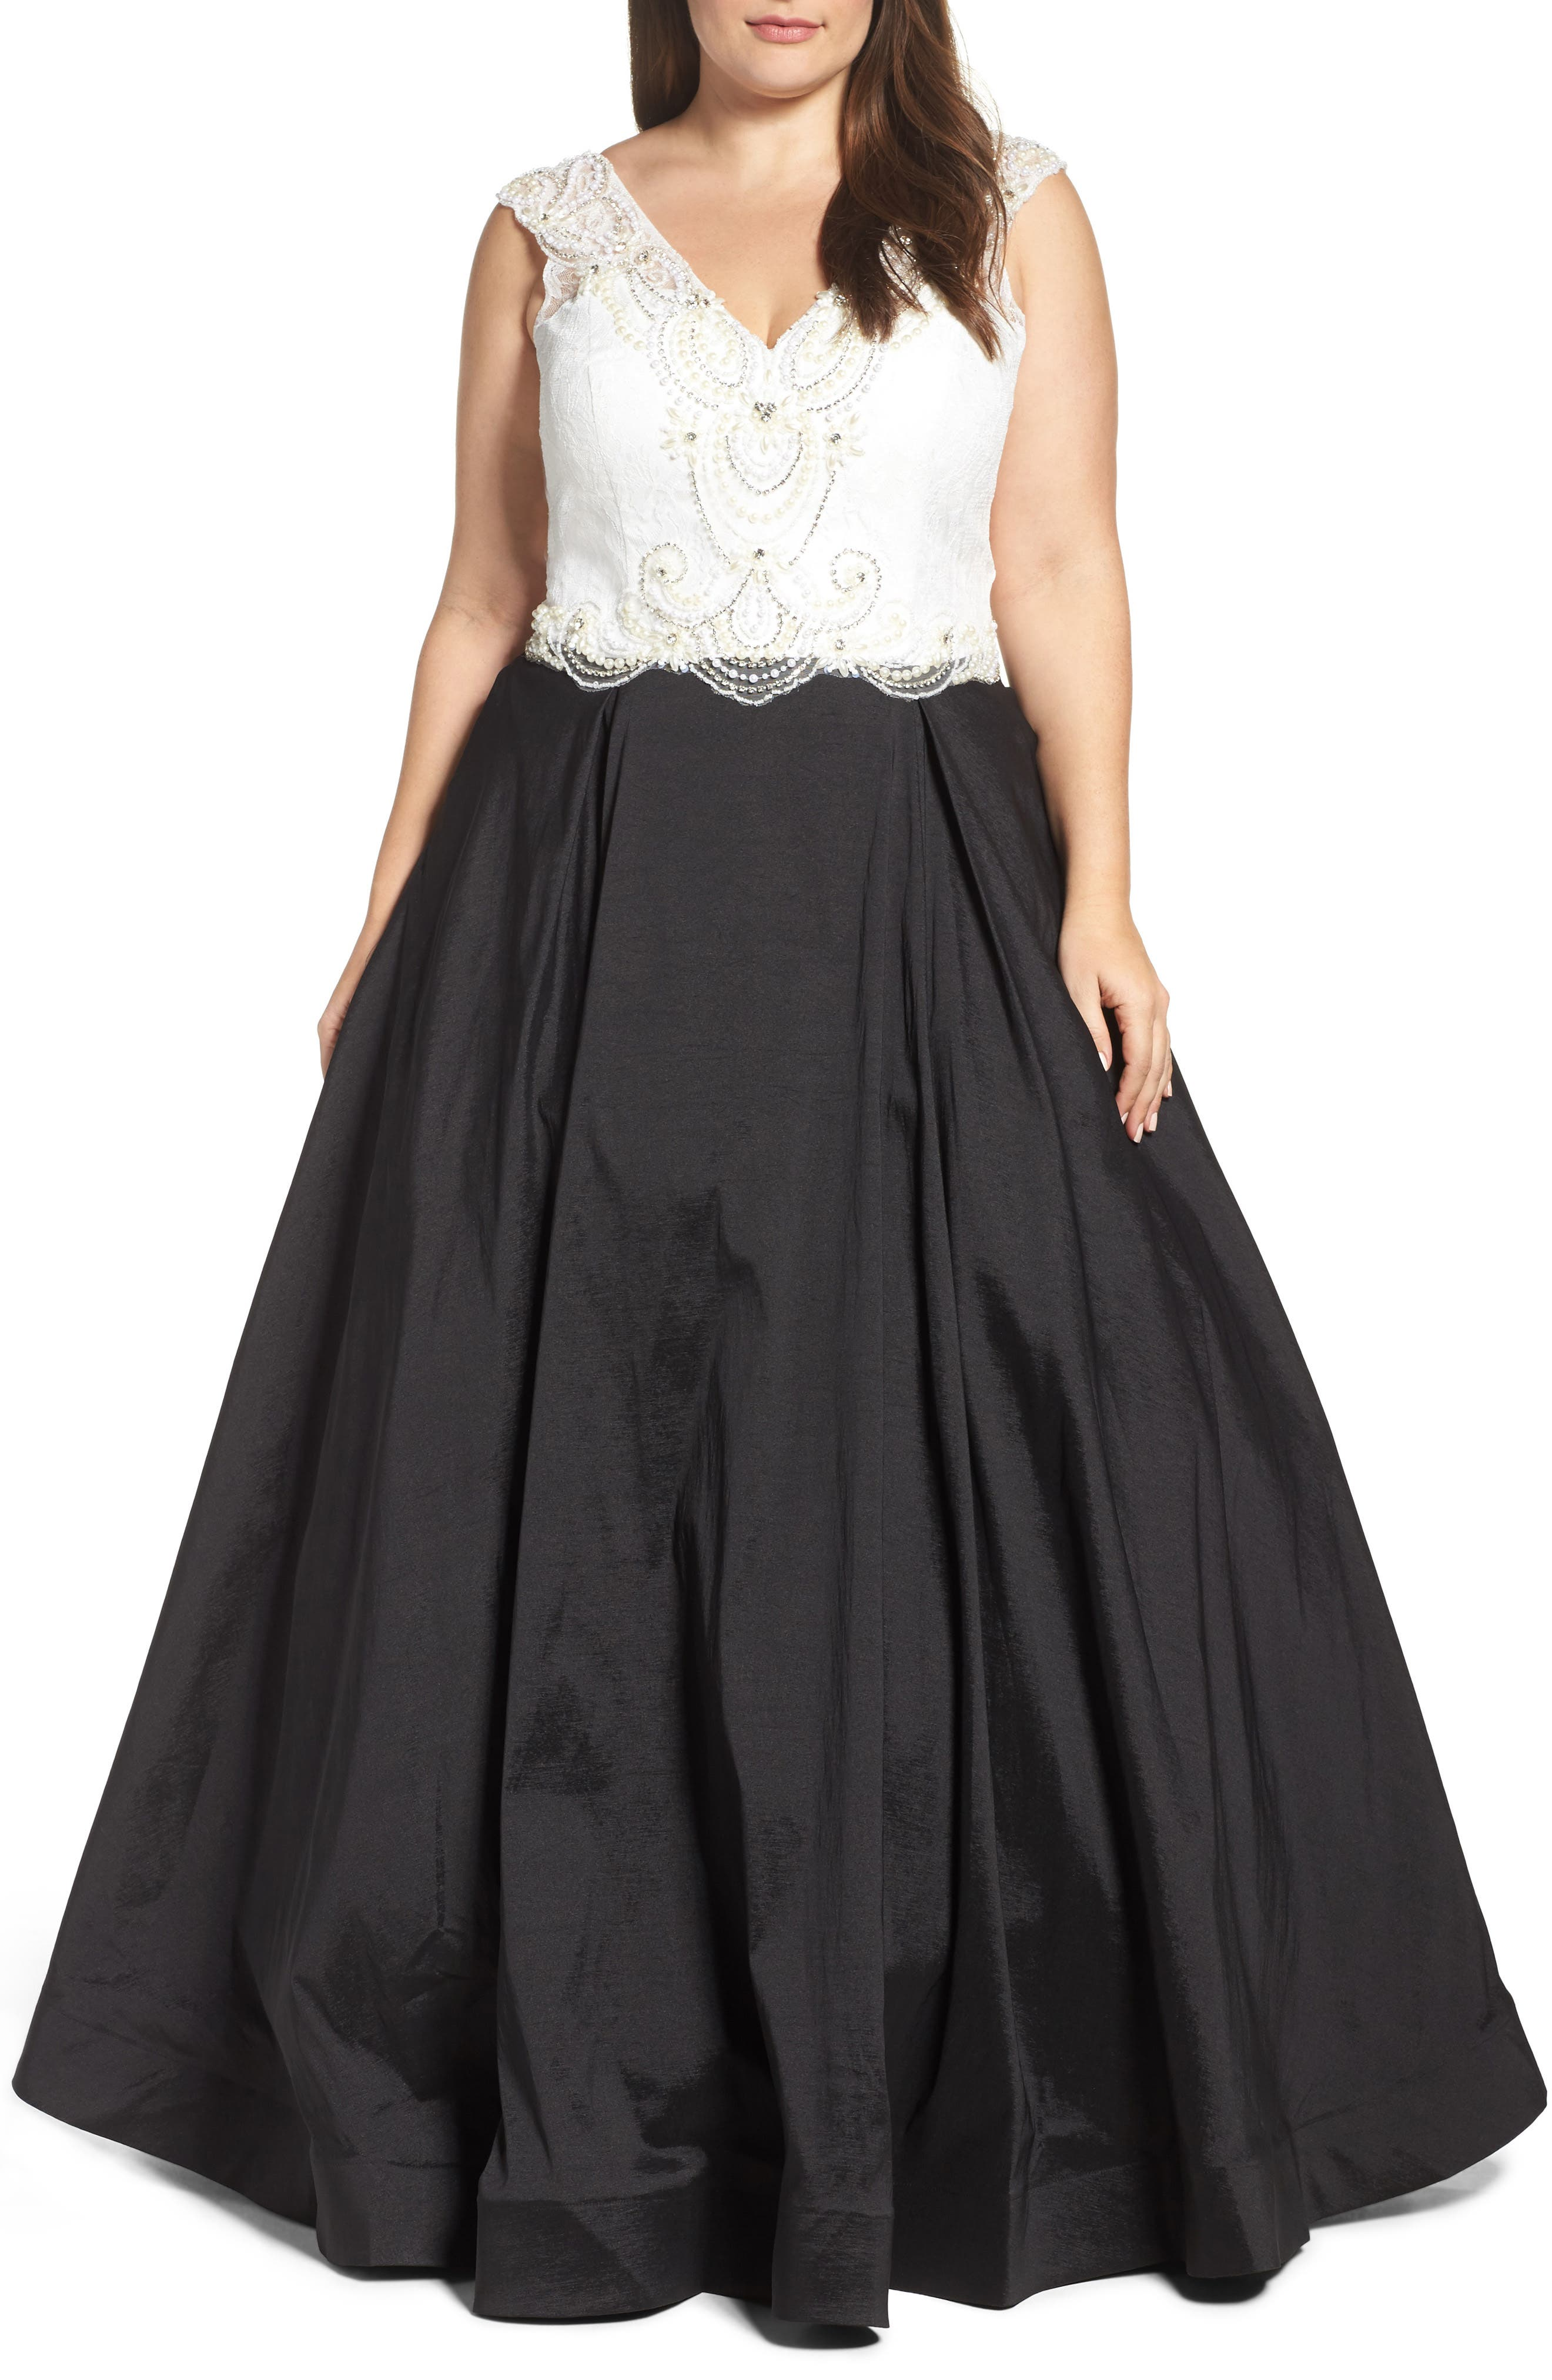 Embellished Lace & Taffeta Ballgown,                             Main thumbnail 1, color,                             Black White